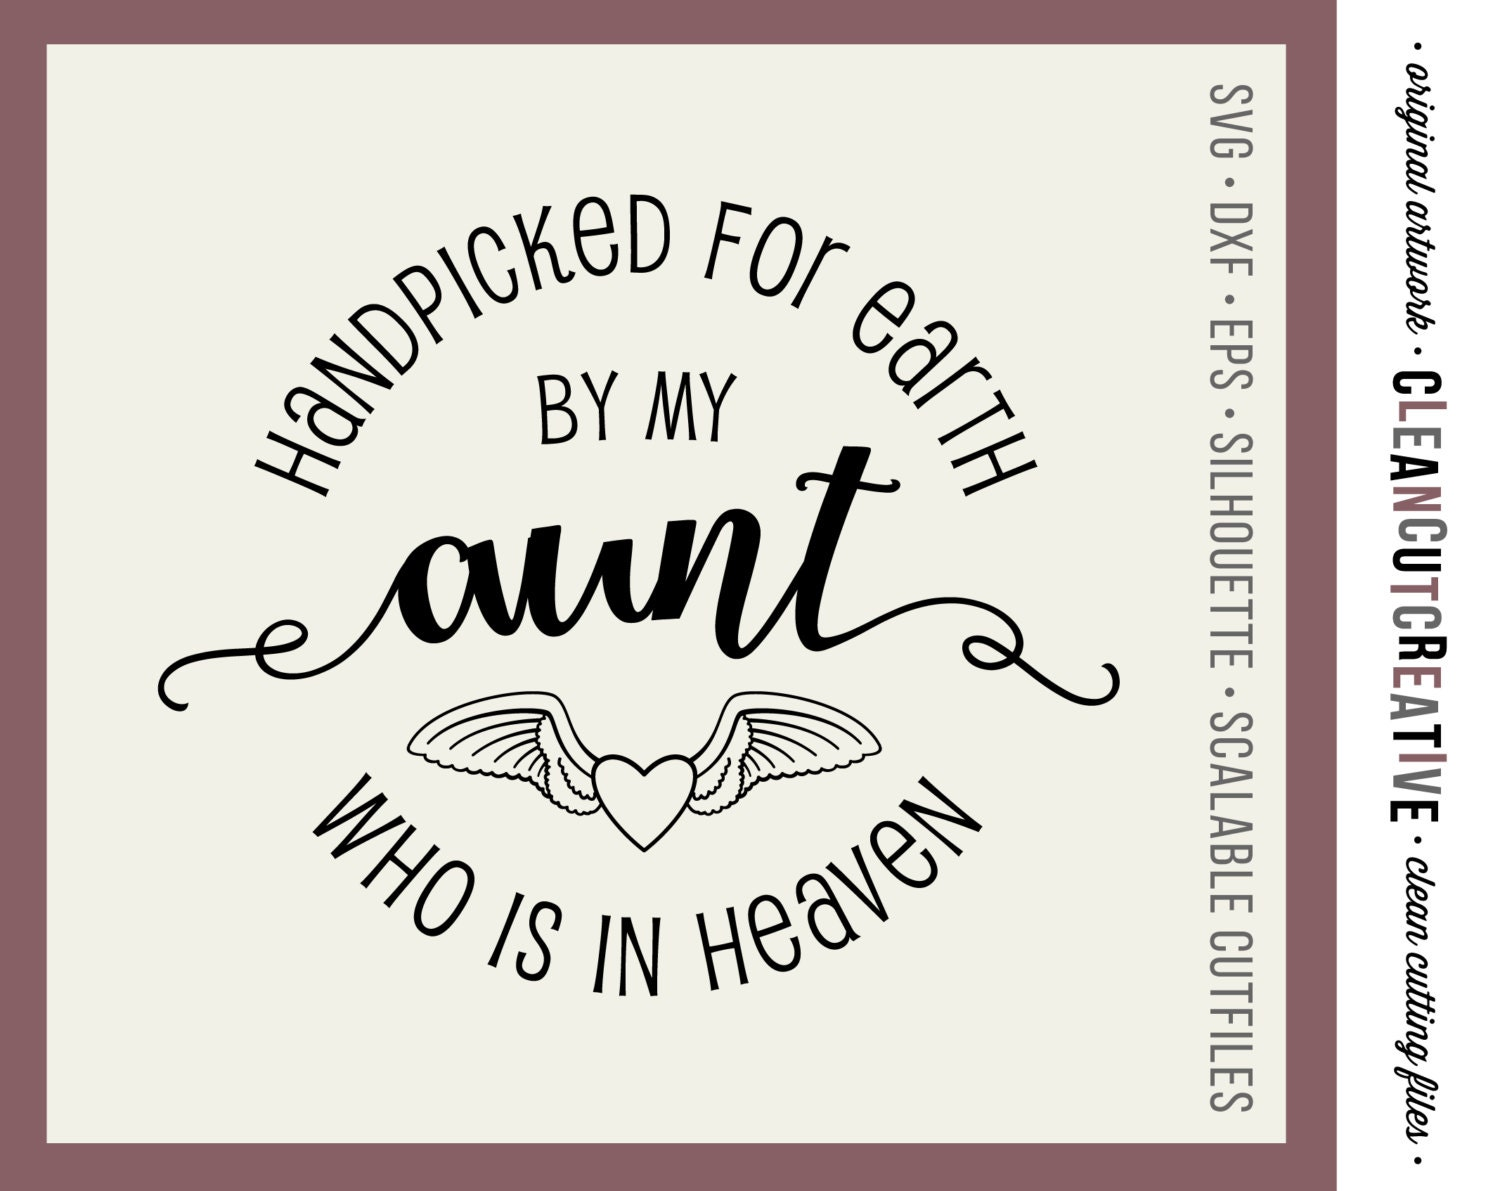 Svg Handpicked For Earth By My Aunt Svg Dxf Eps Png